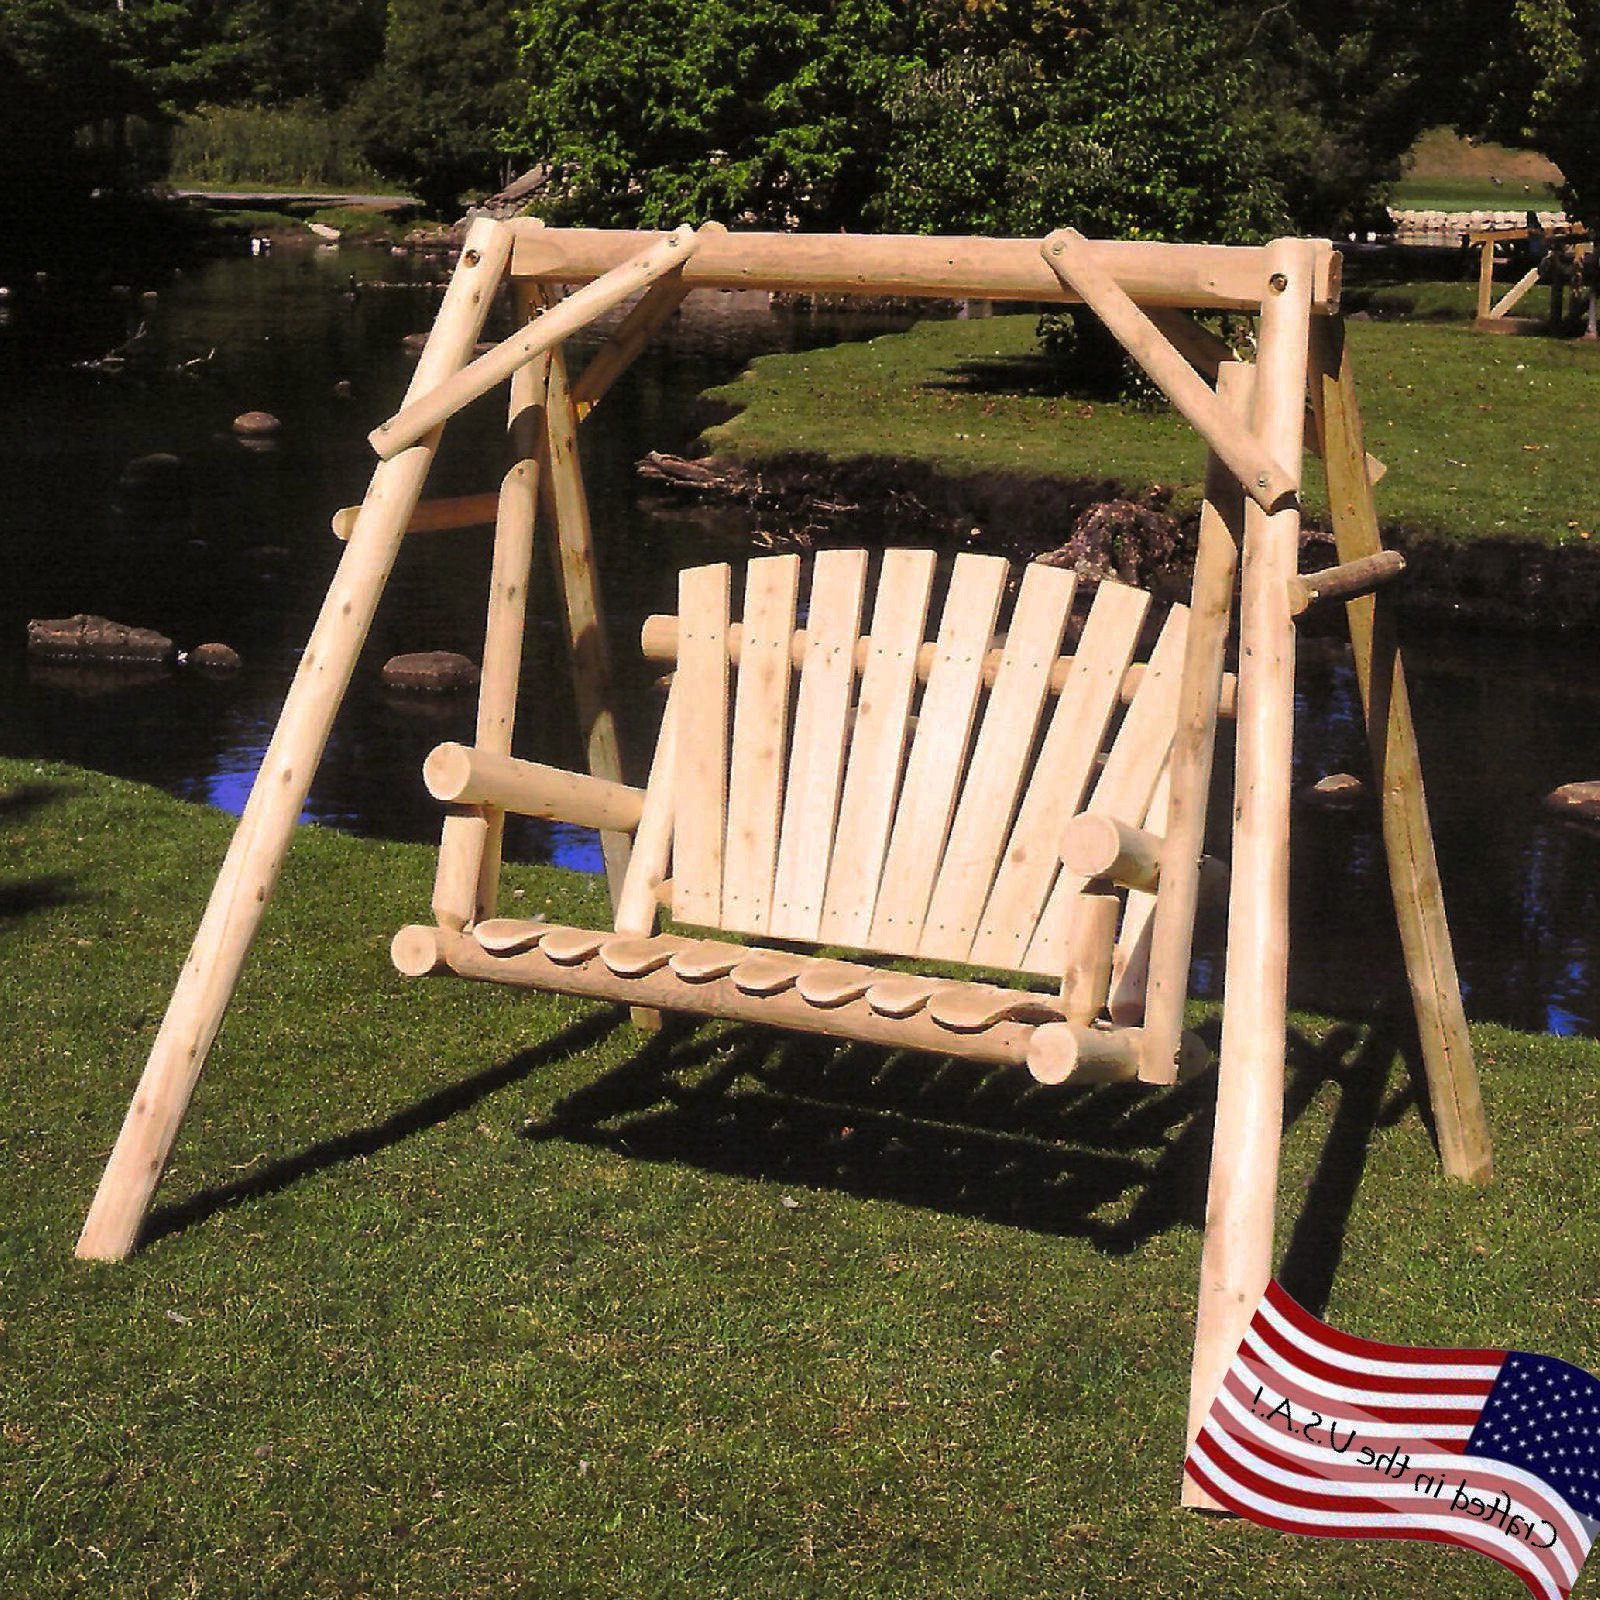 Lakeland Mills White Cedar Log Porch Swing And Stand Set – Walmart Intended For Most Recently Released Porch Swings With Stand (Gallery 2 of 25)